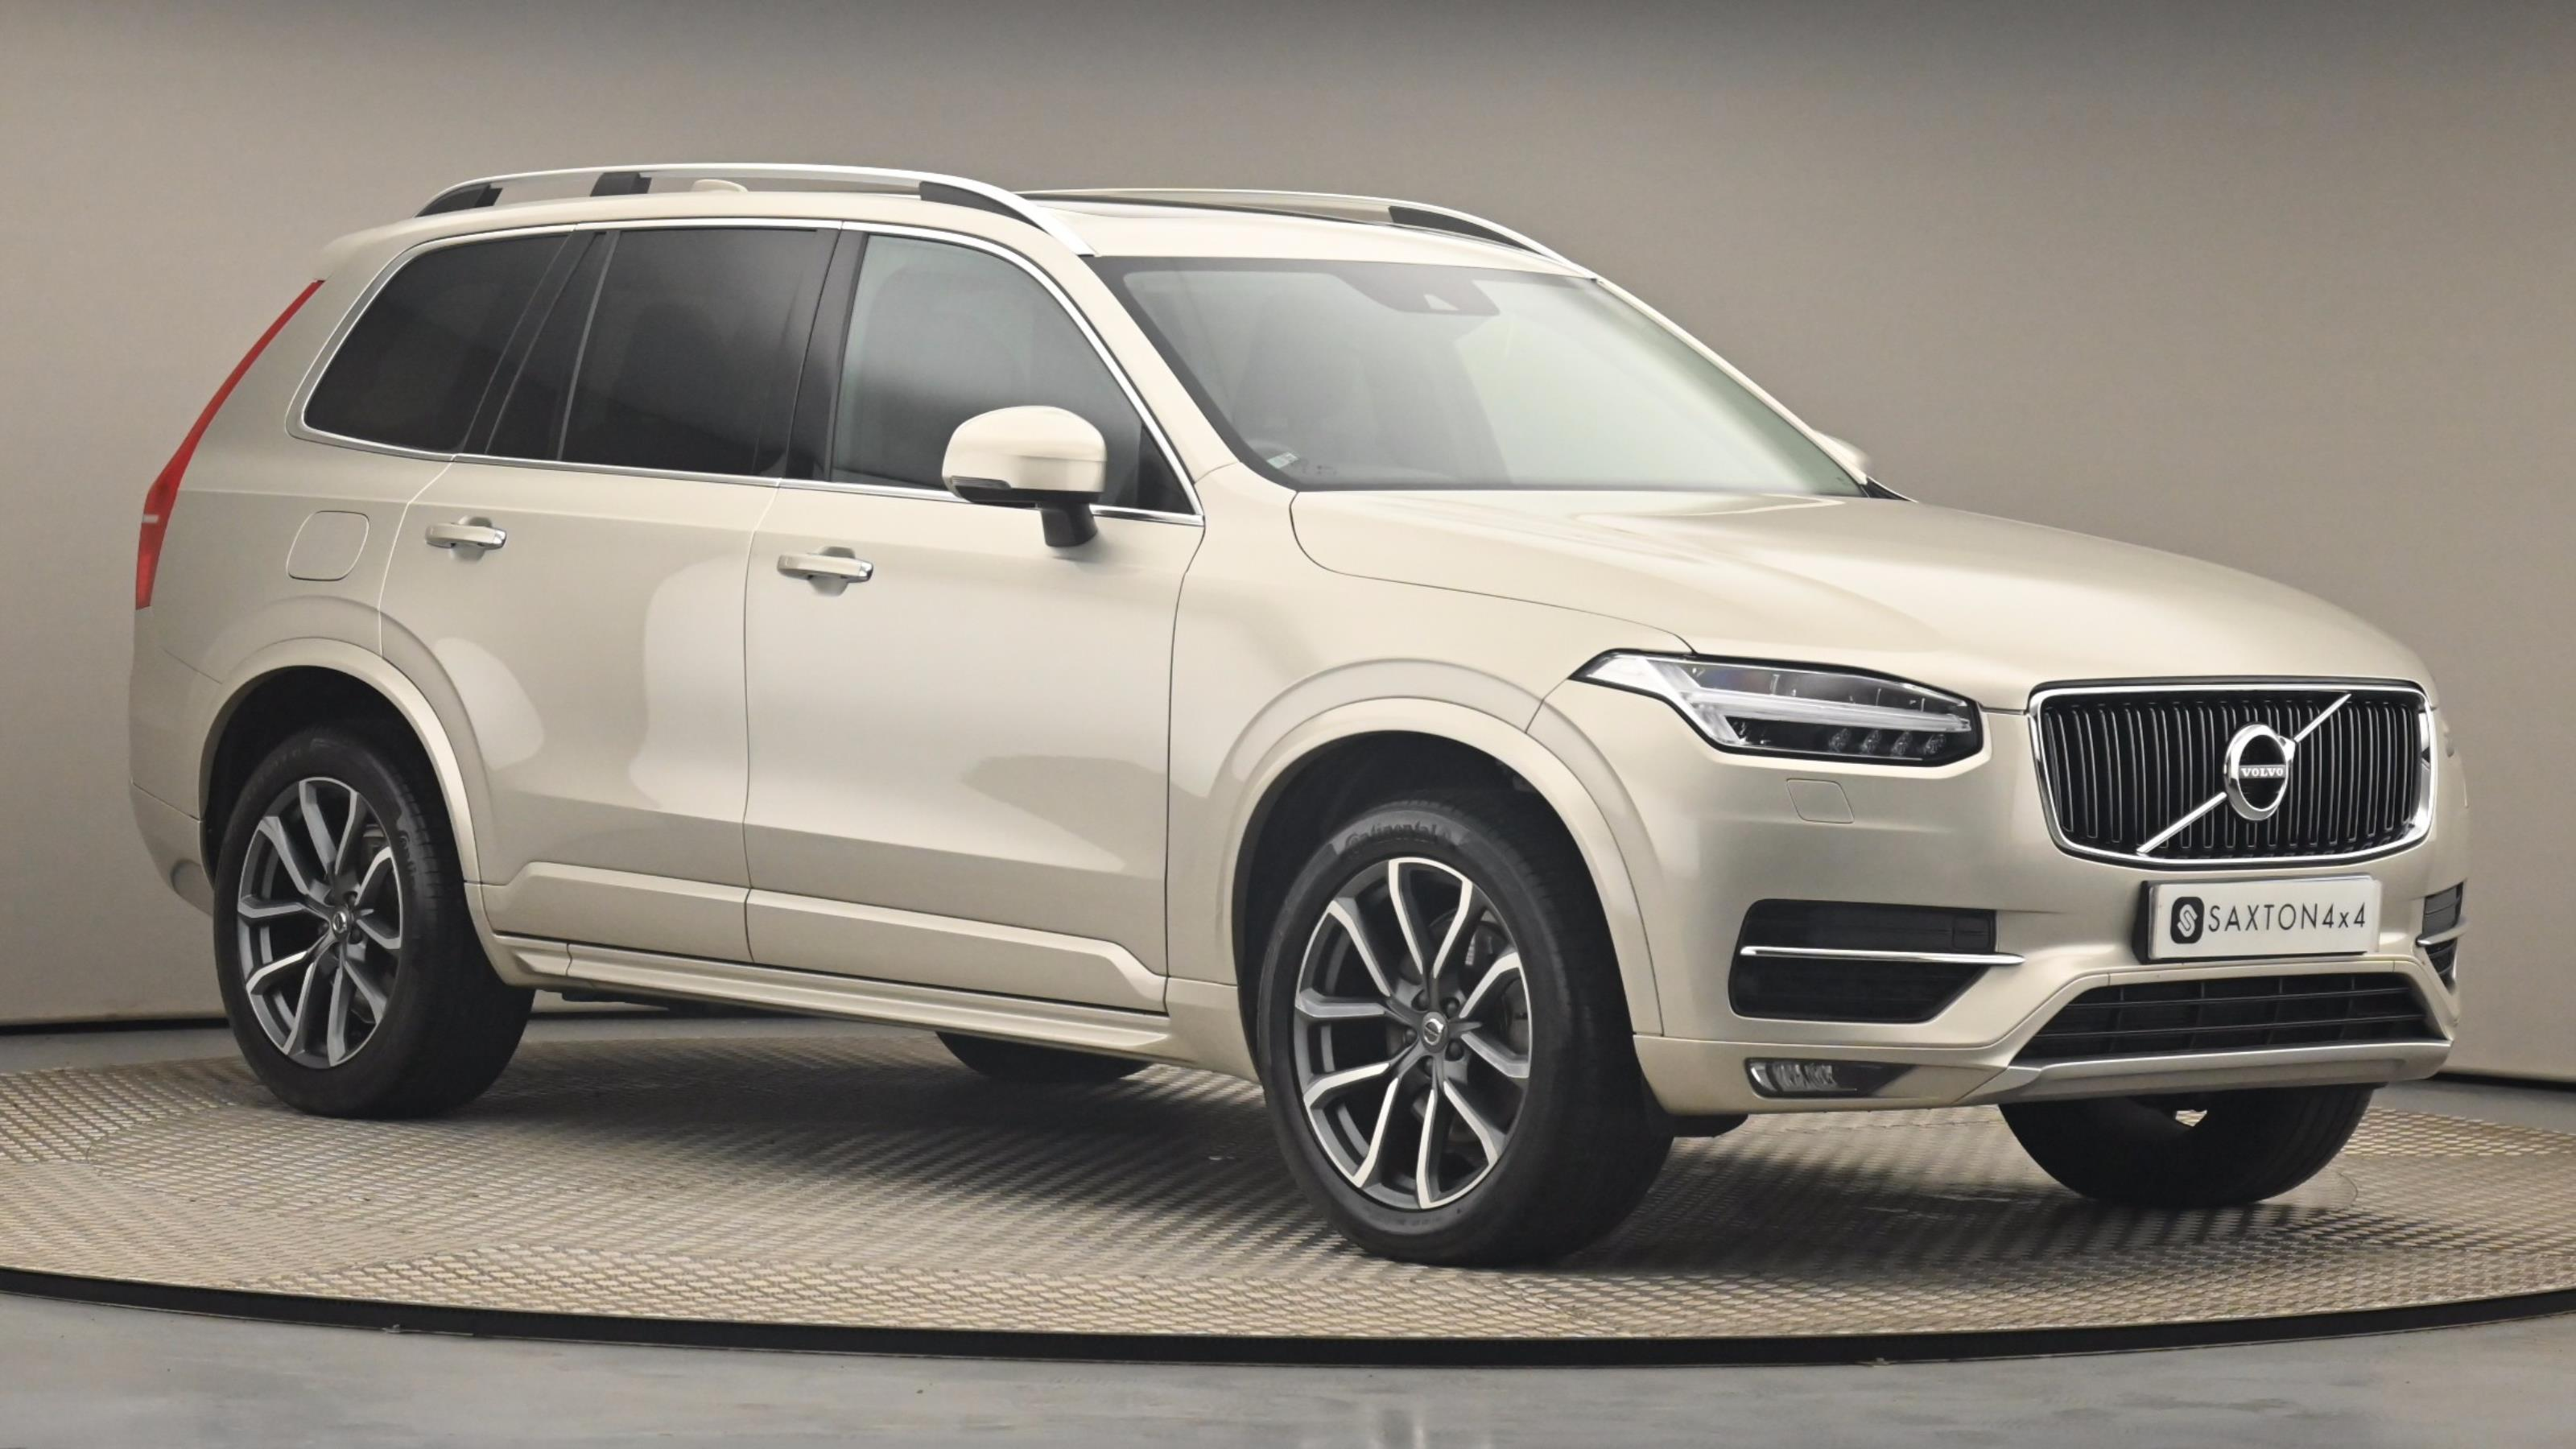 Used 2016 Volvo XC90 2.0 D5 PowerPulse Momentum 5dr AWD Geartronic GOLD at Saxton4x4